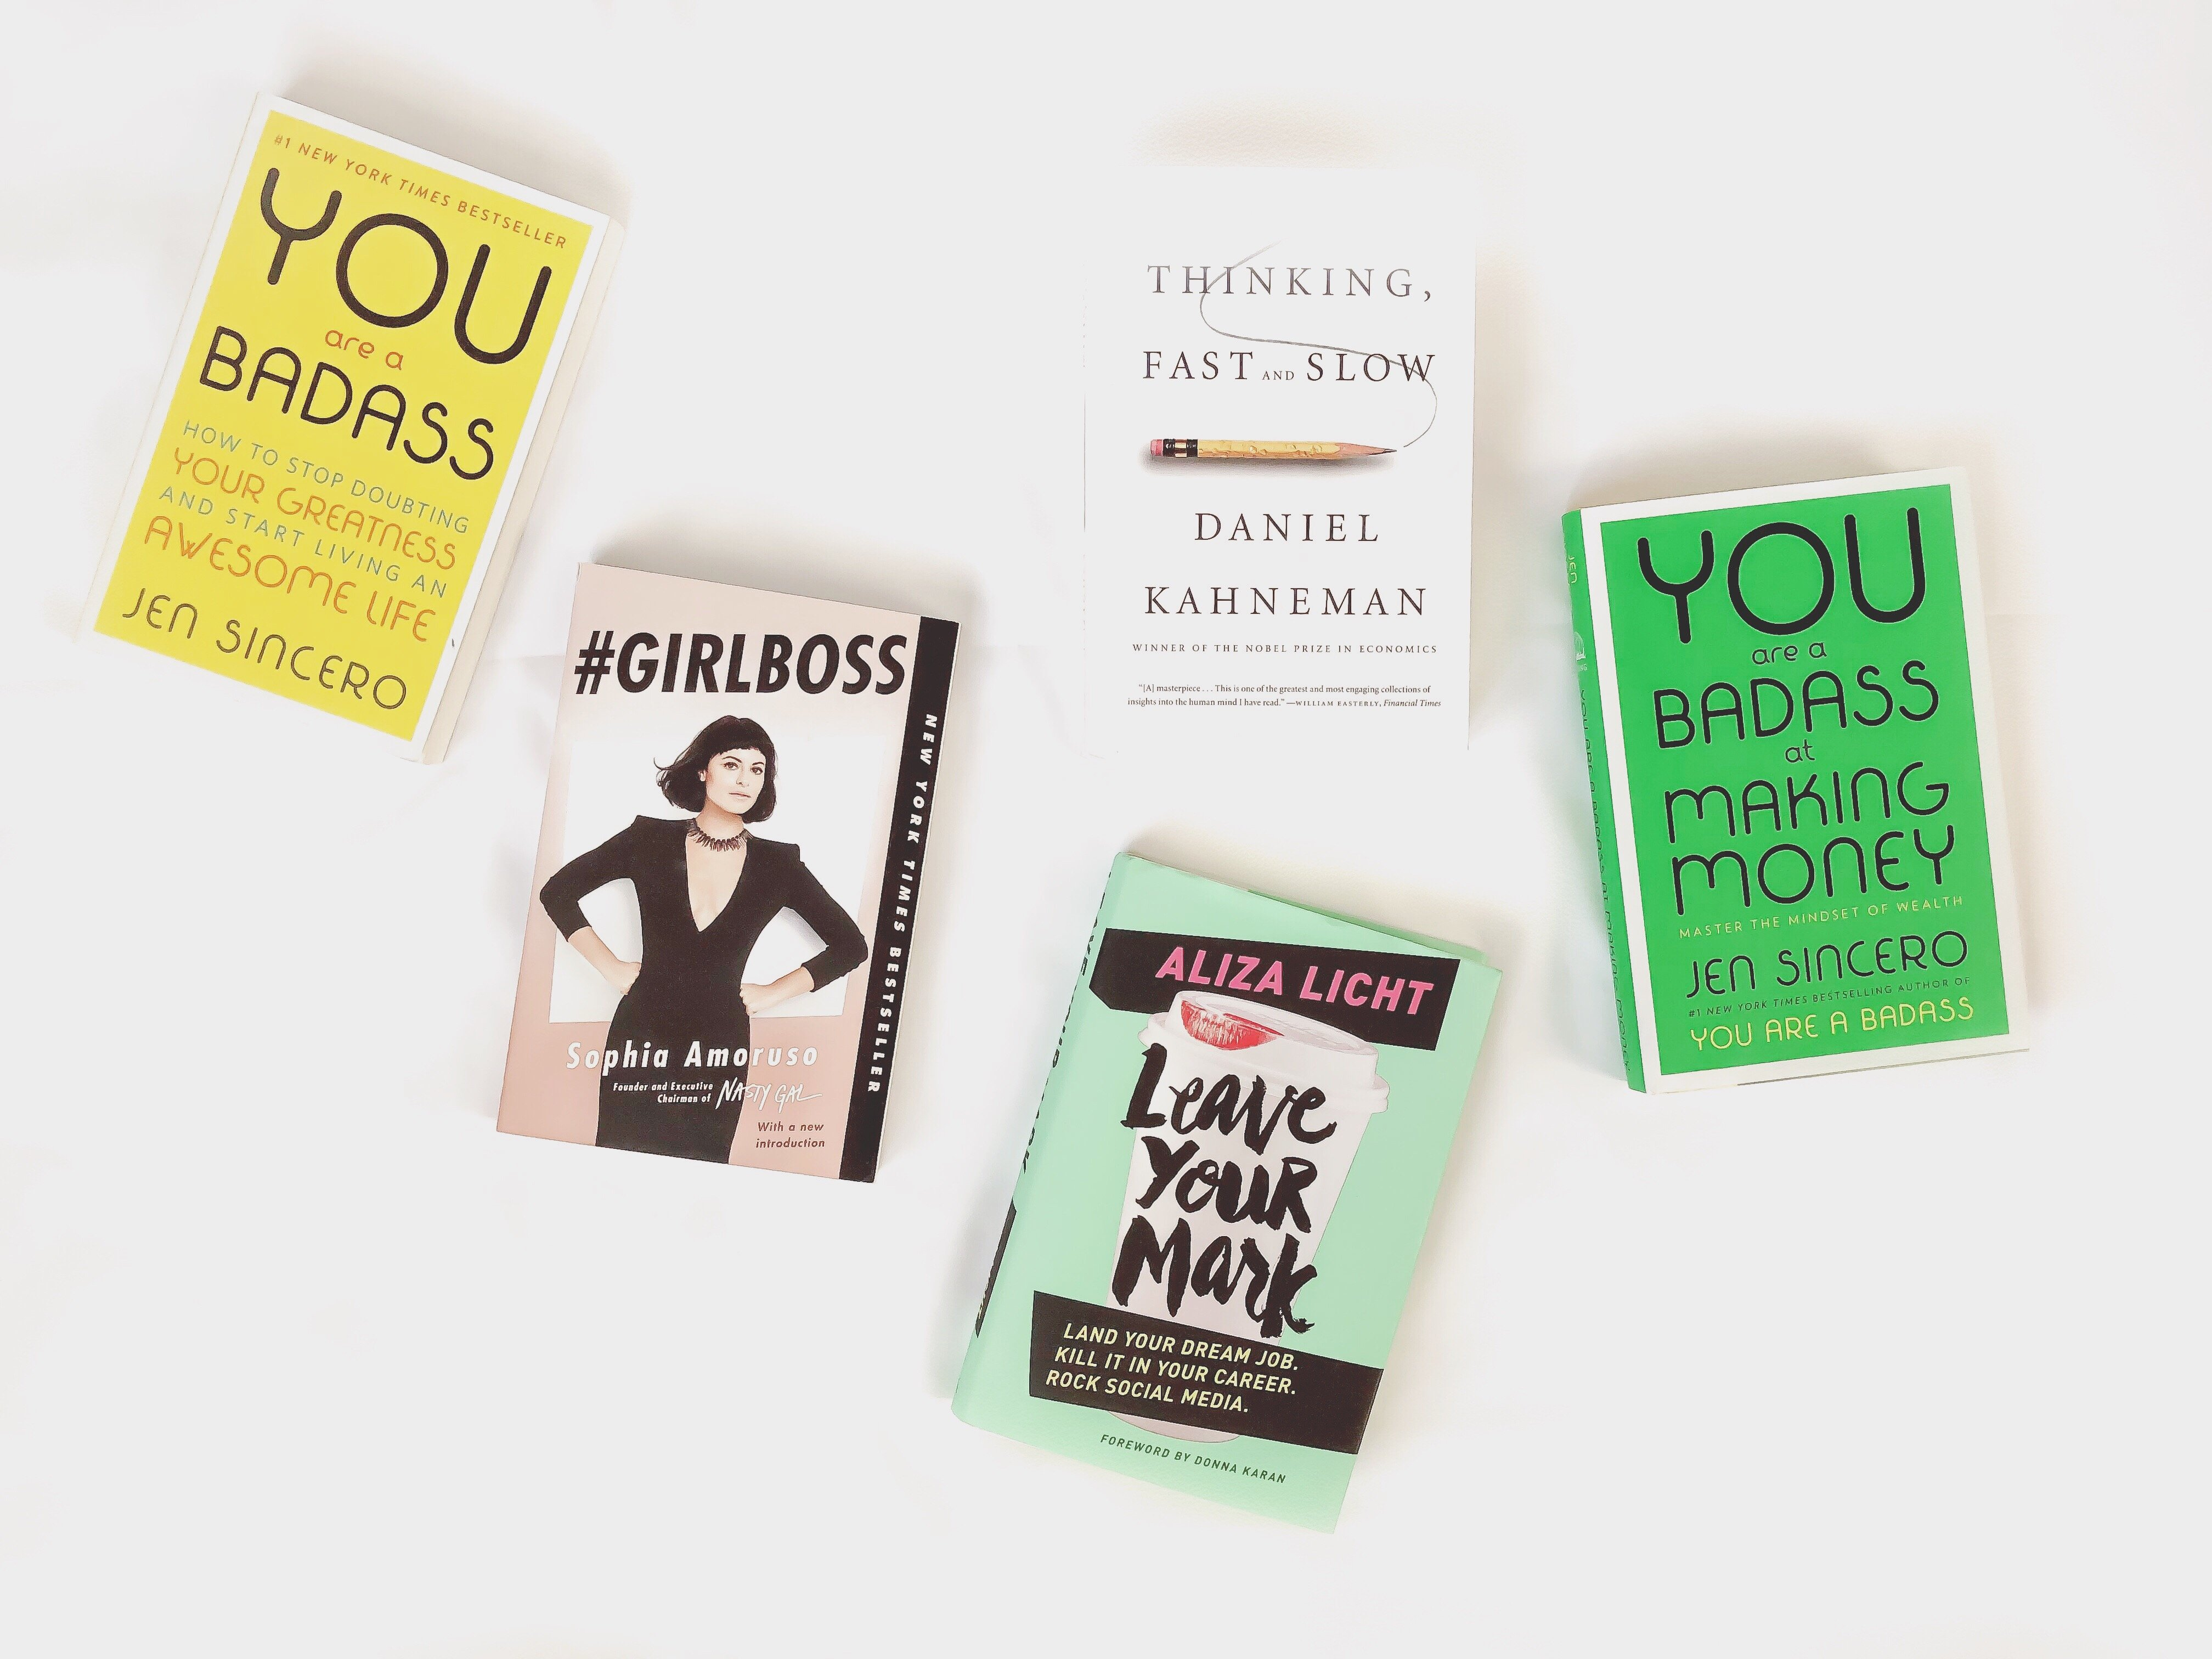 5 Books to motivate you to become the best girl boss you can possibly be